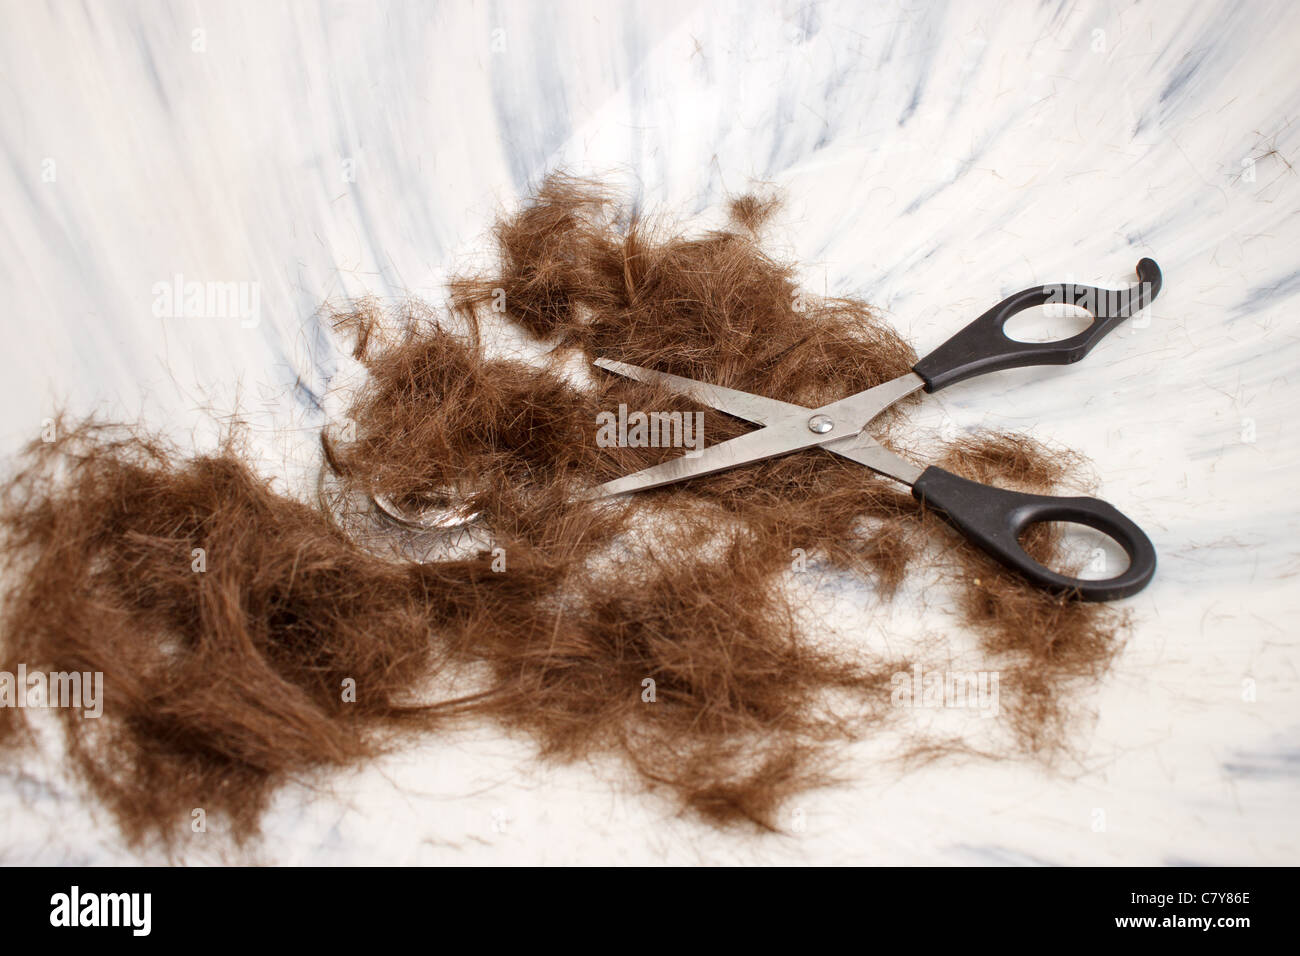 Scissors and hair clippings in marble sink after cut - Stock Image